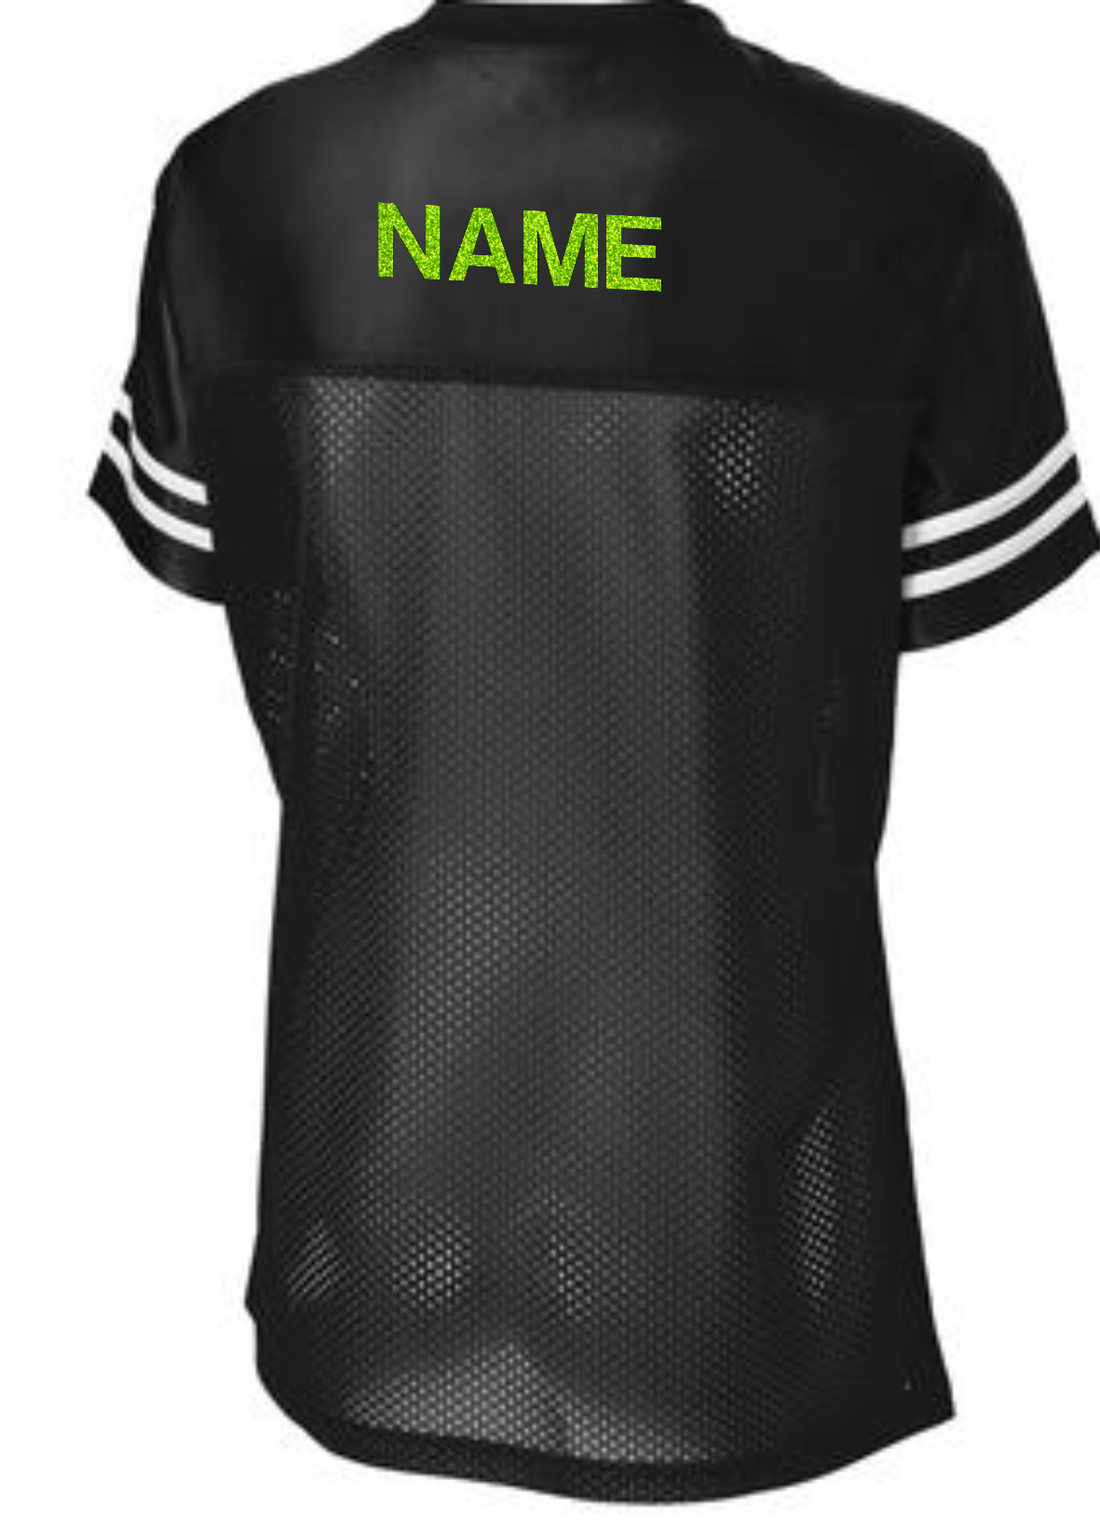 AKA FITTED BLING LADIES JERSEY 1